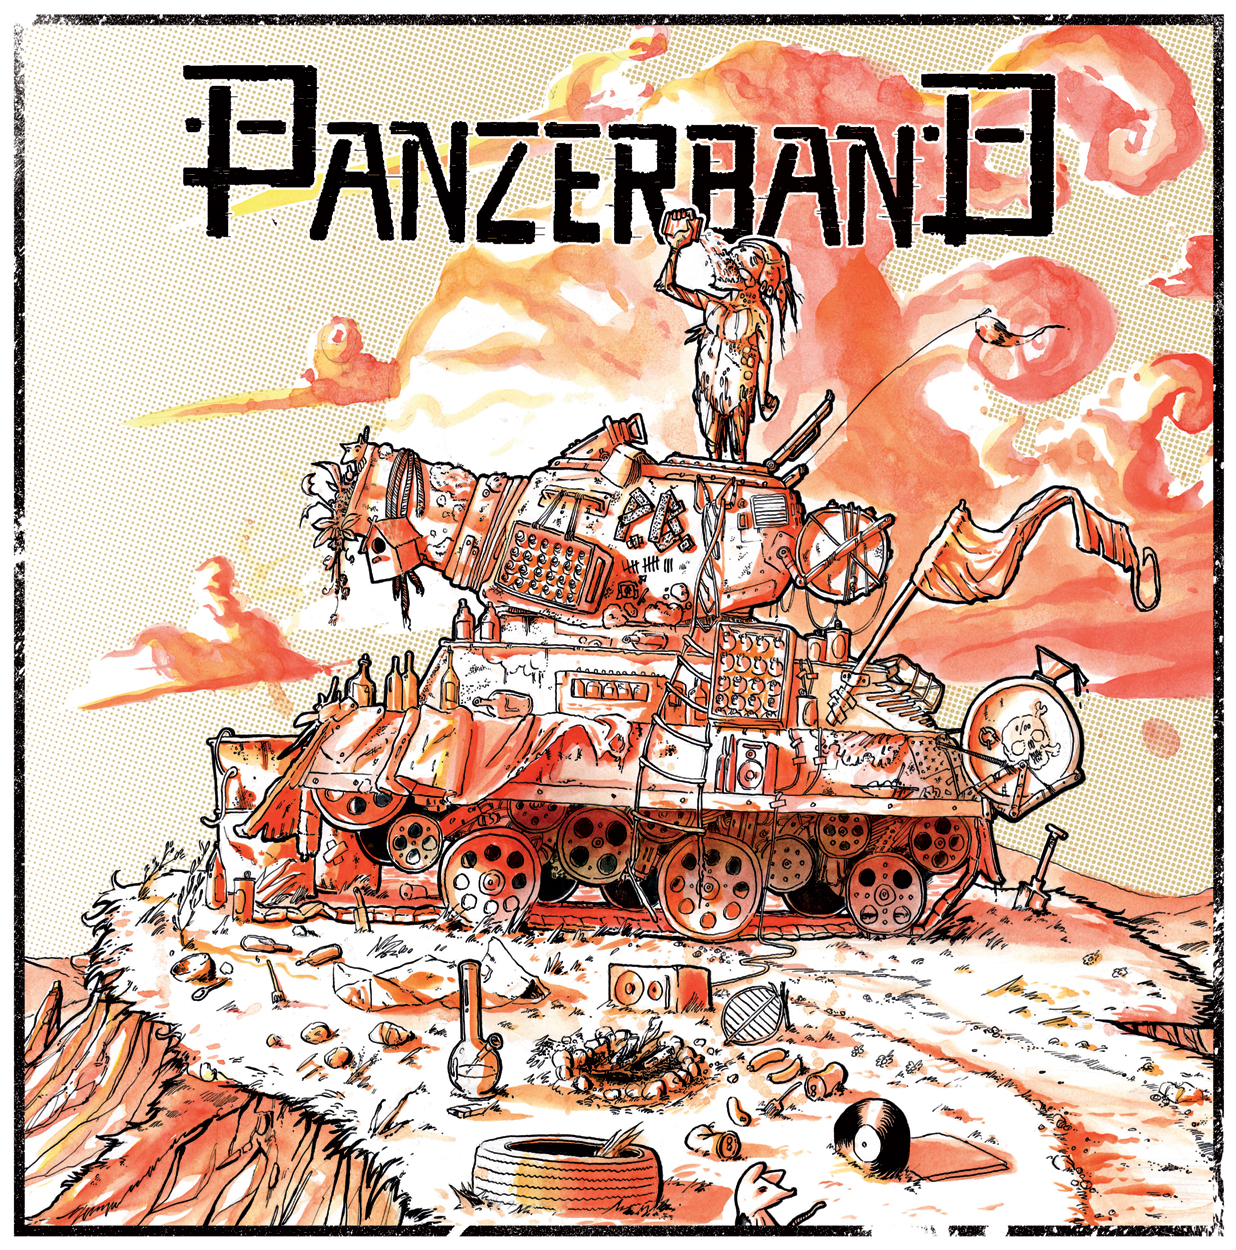 Panzerband s/t LP Twisted Chords, Punkrock